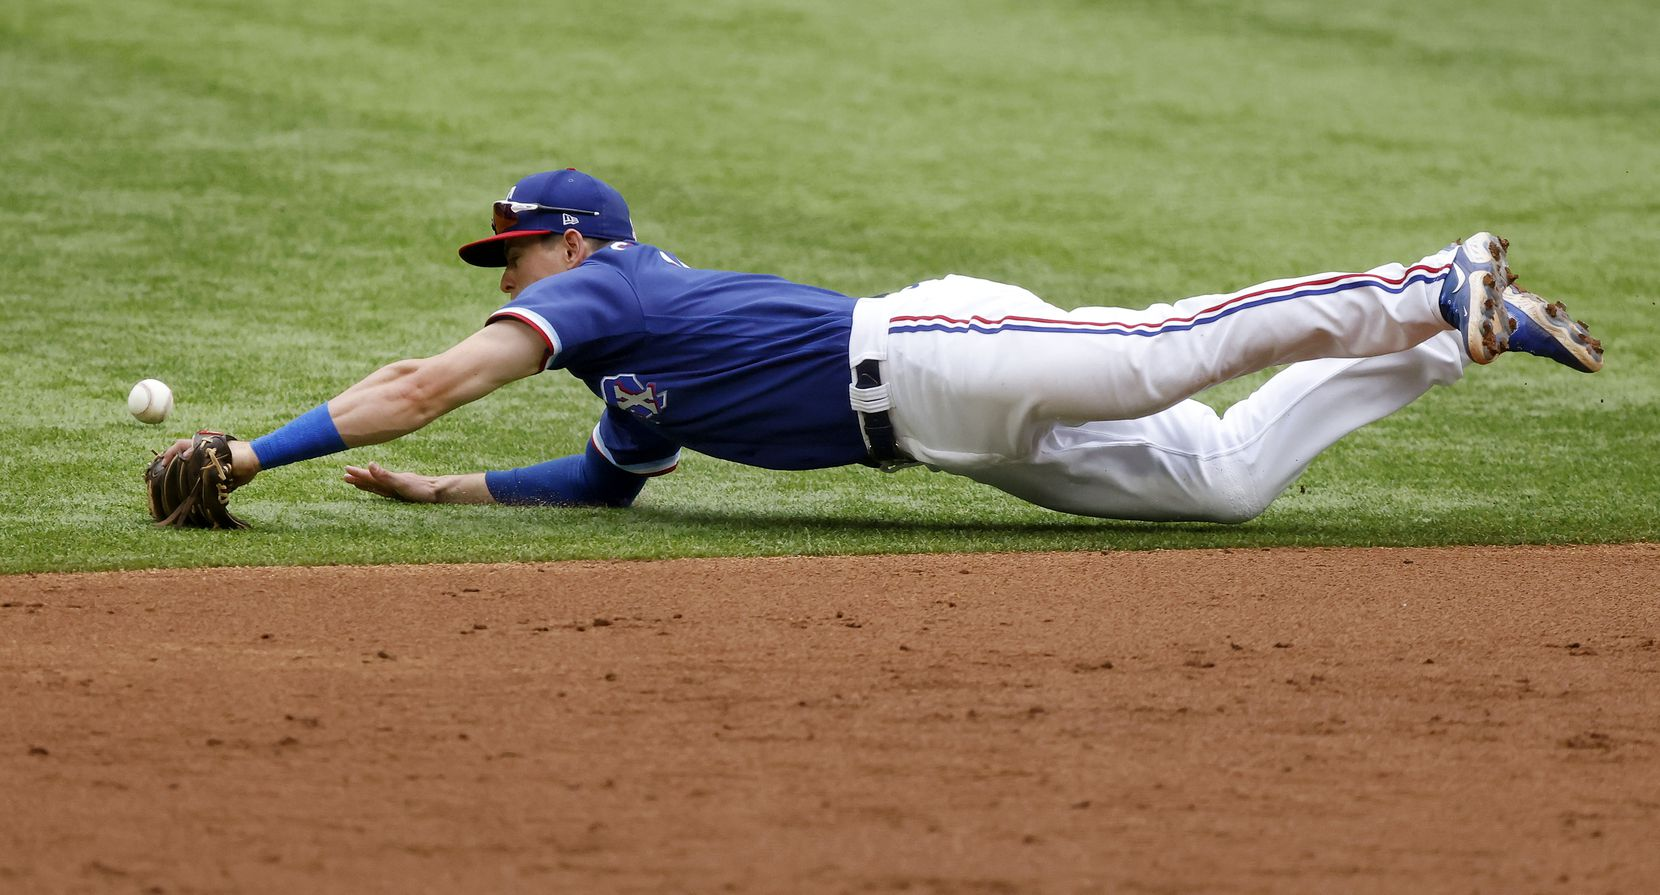 Texas Rangers second baseman Nick Solak (15) dives and narrowly misses a grounder by Milwaukee Brewers batter Lorenzo Cain in the third inning at Globe Life Field in Arlington, Texas. The teams were playing in an exhibition game, Tuesday, March 30, 2021. (Tom Fox/The Dallas Morning News)12